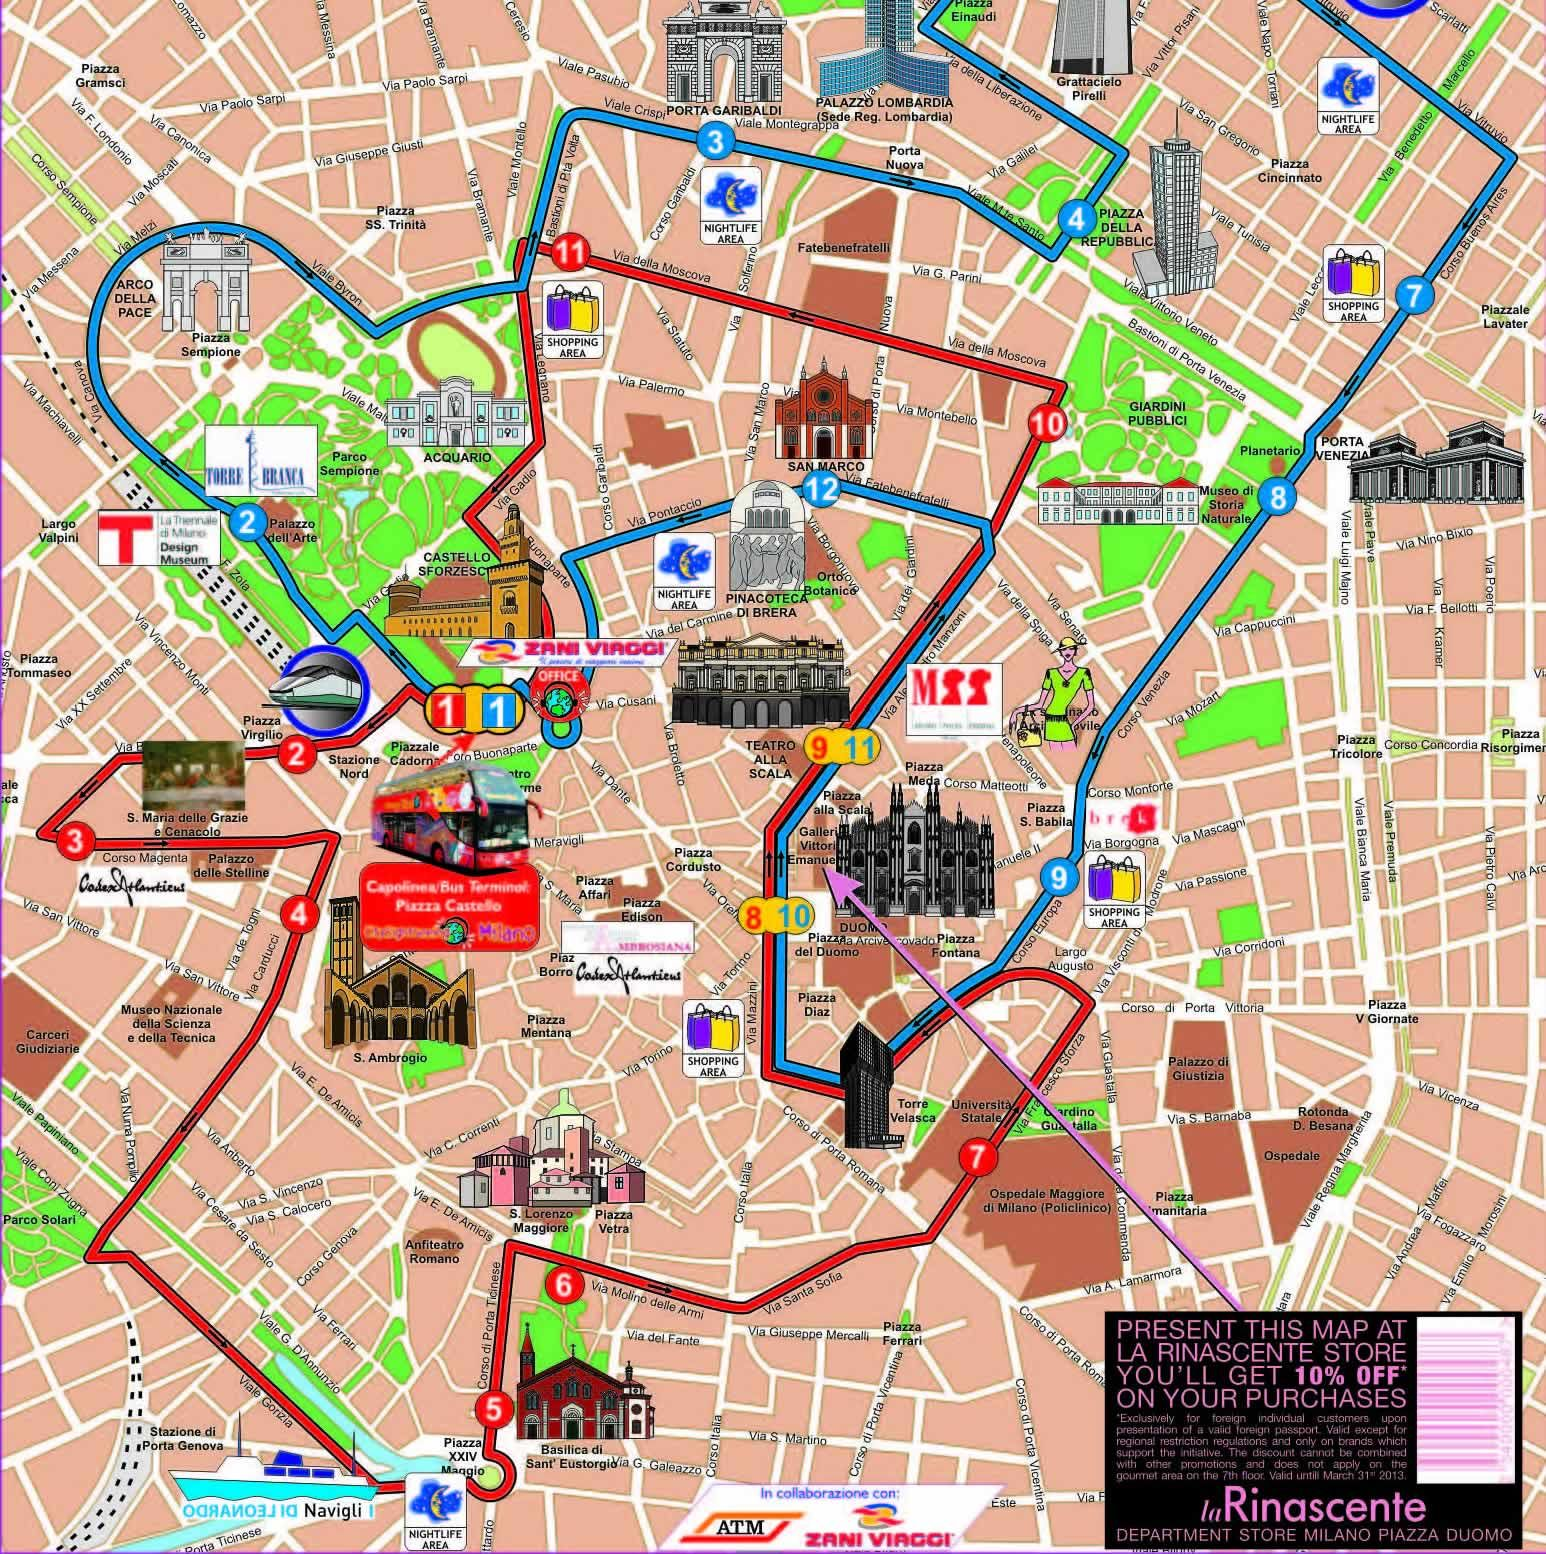 milan map Google Search Travel Pinterest Milan travel Italy